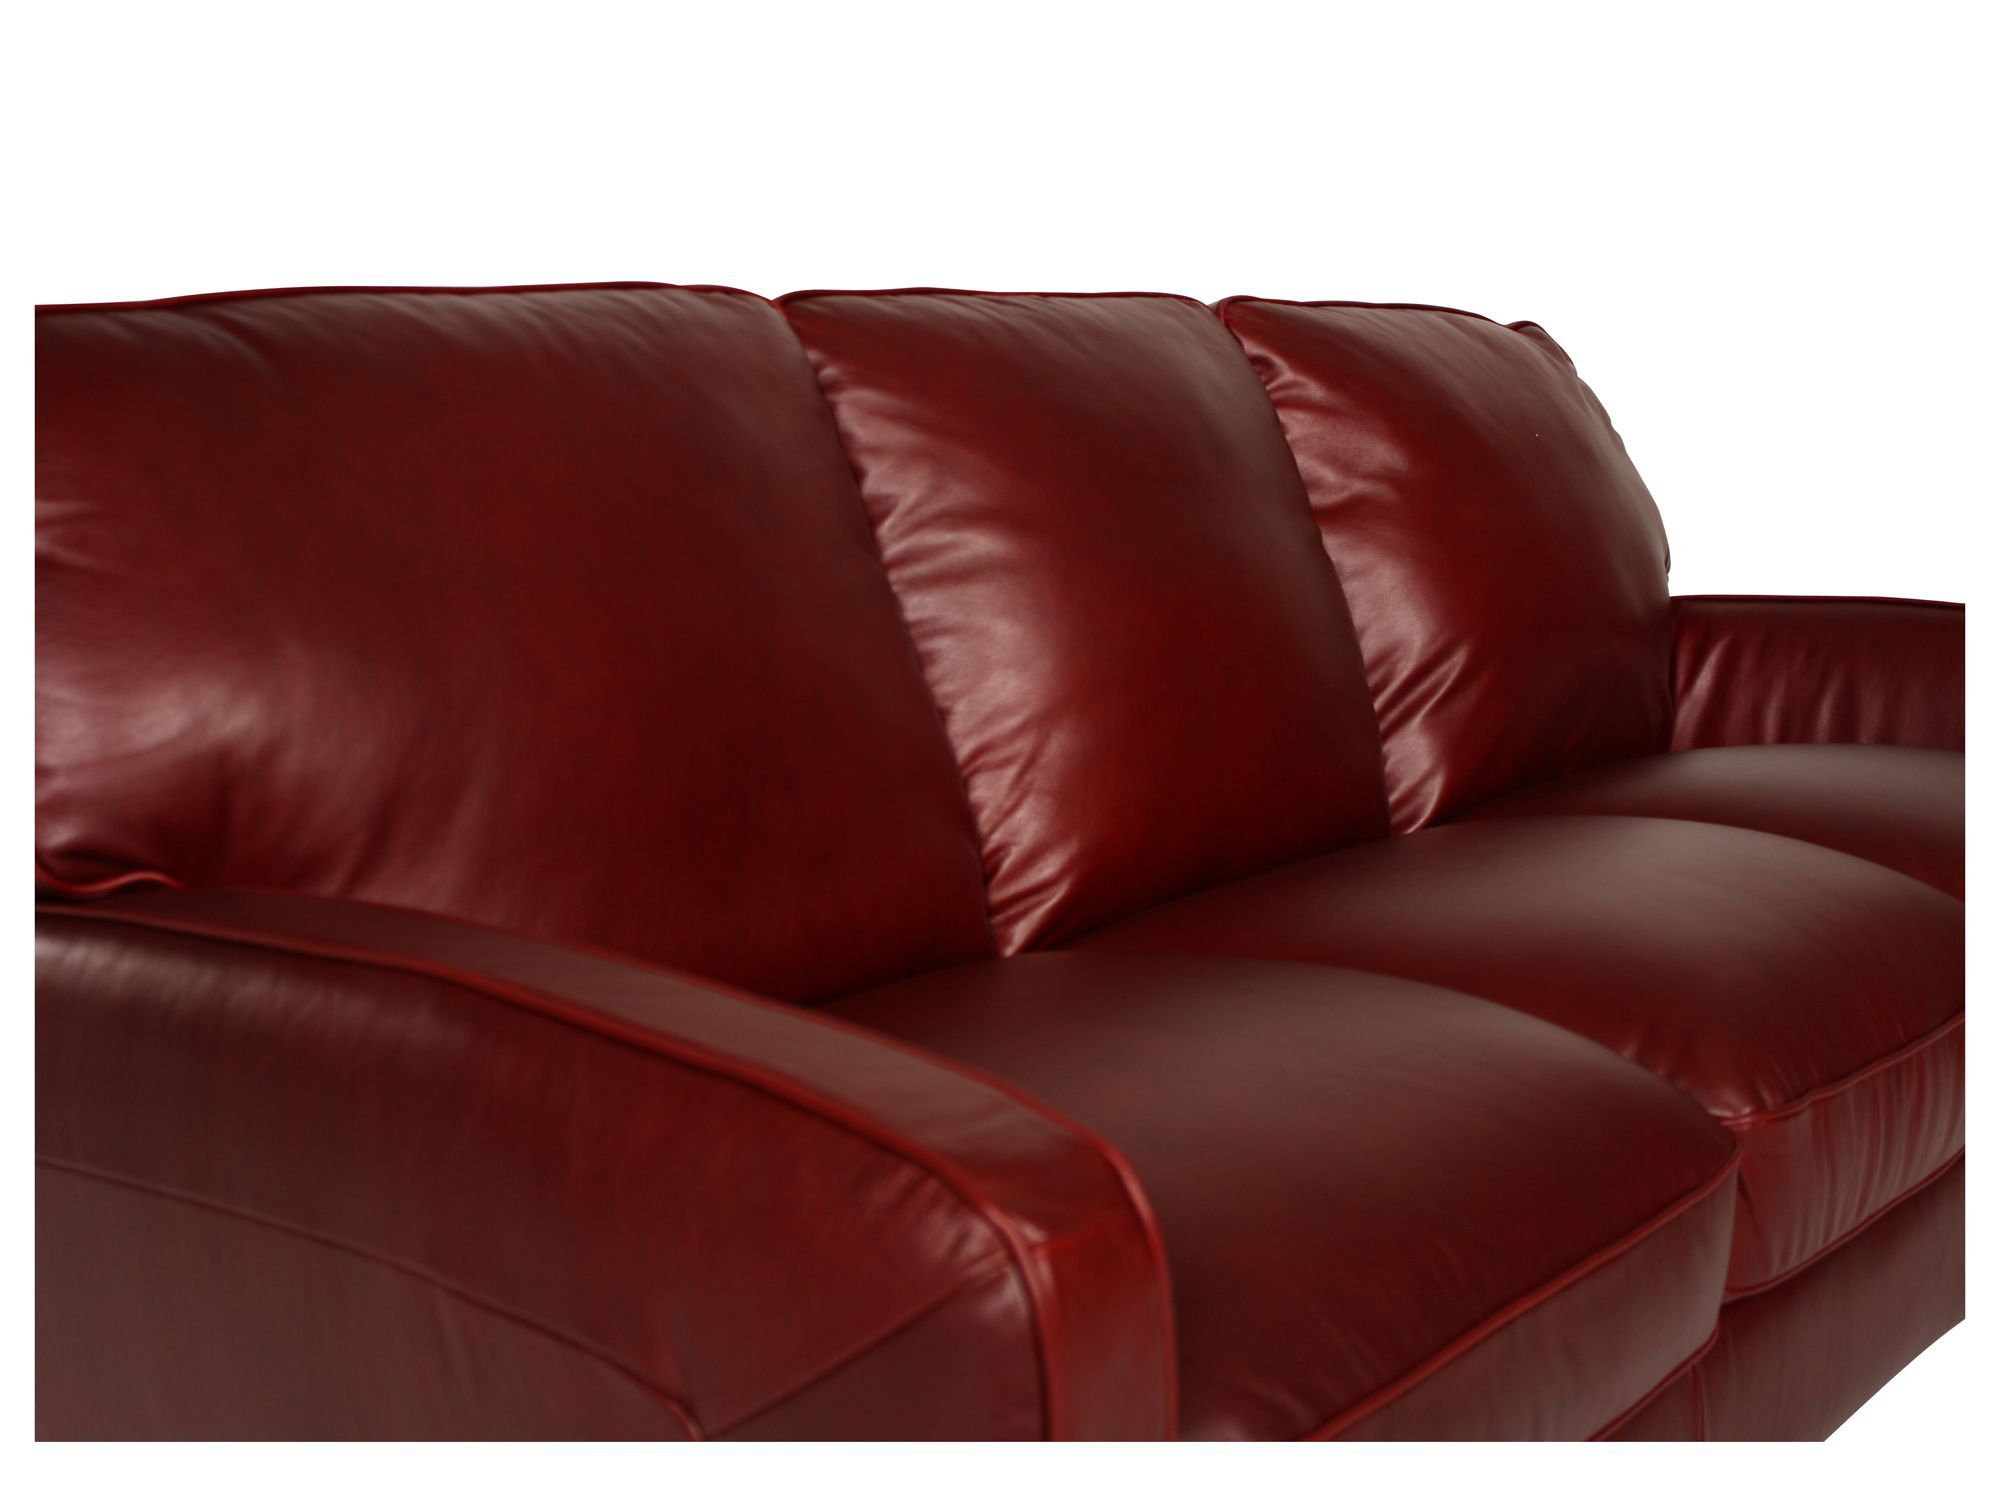 Natuzzi deep red leather sofa shades of grey room Accent chairs